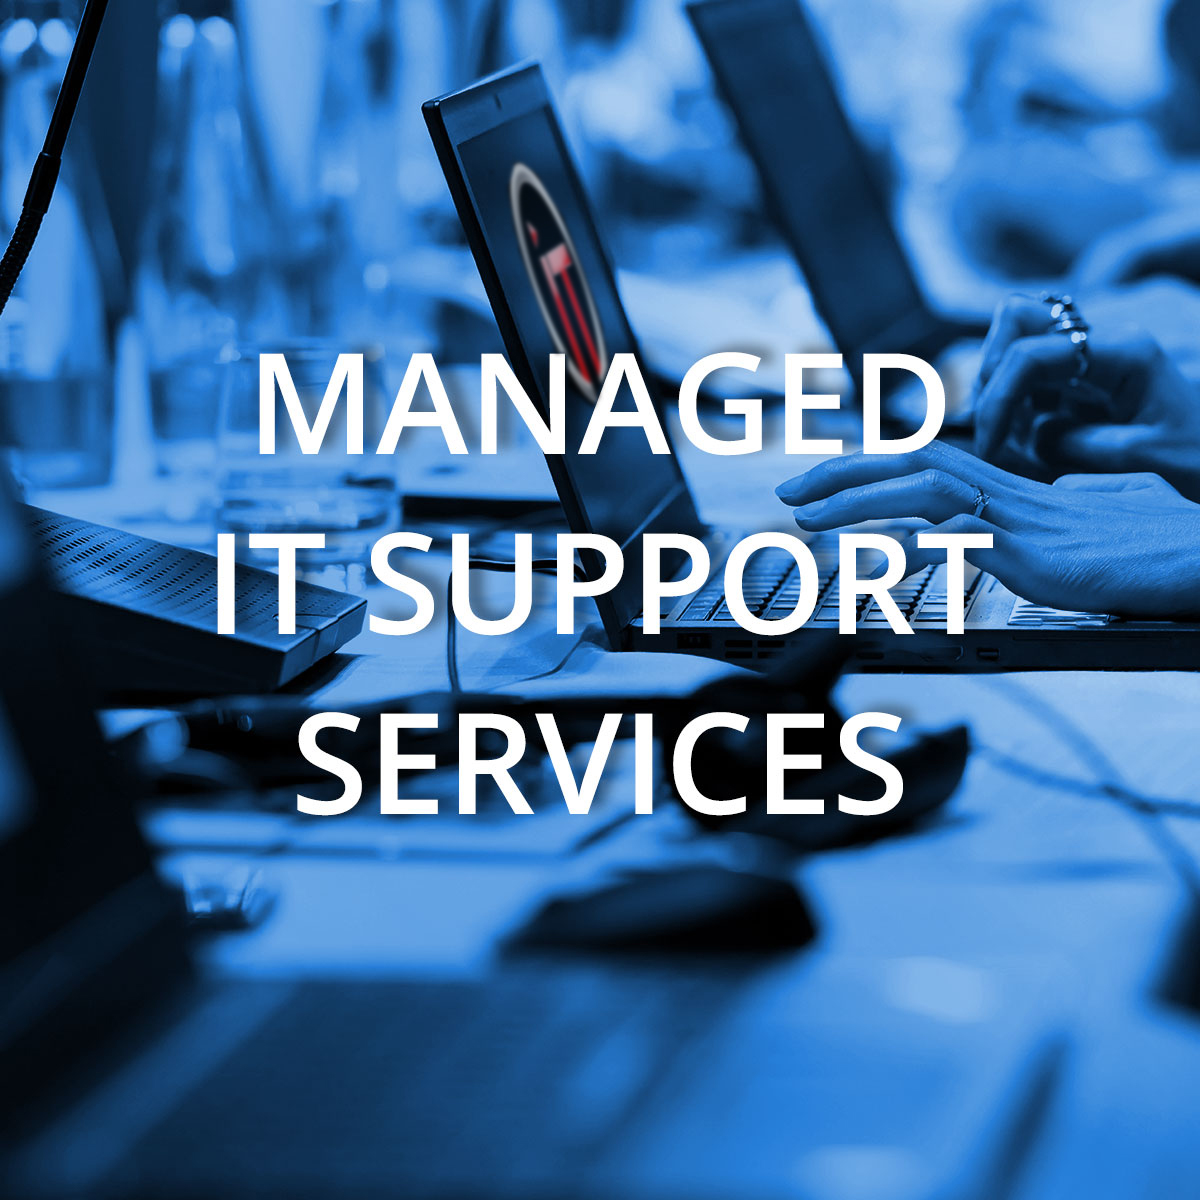 Interpro Technology IT Support - Managed Outsourced & Pay As You Go IT Support - Portsmouth, Southampton, Fareham and Hampshire